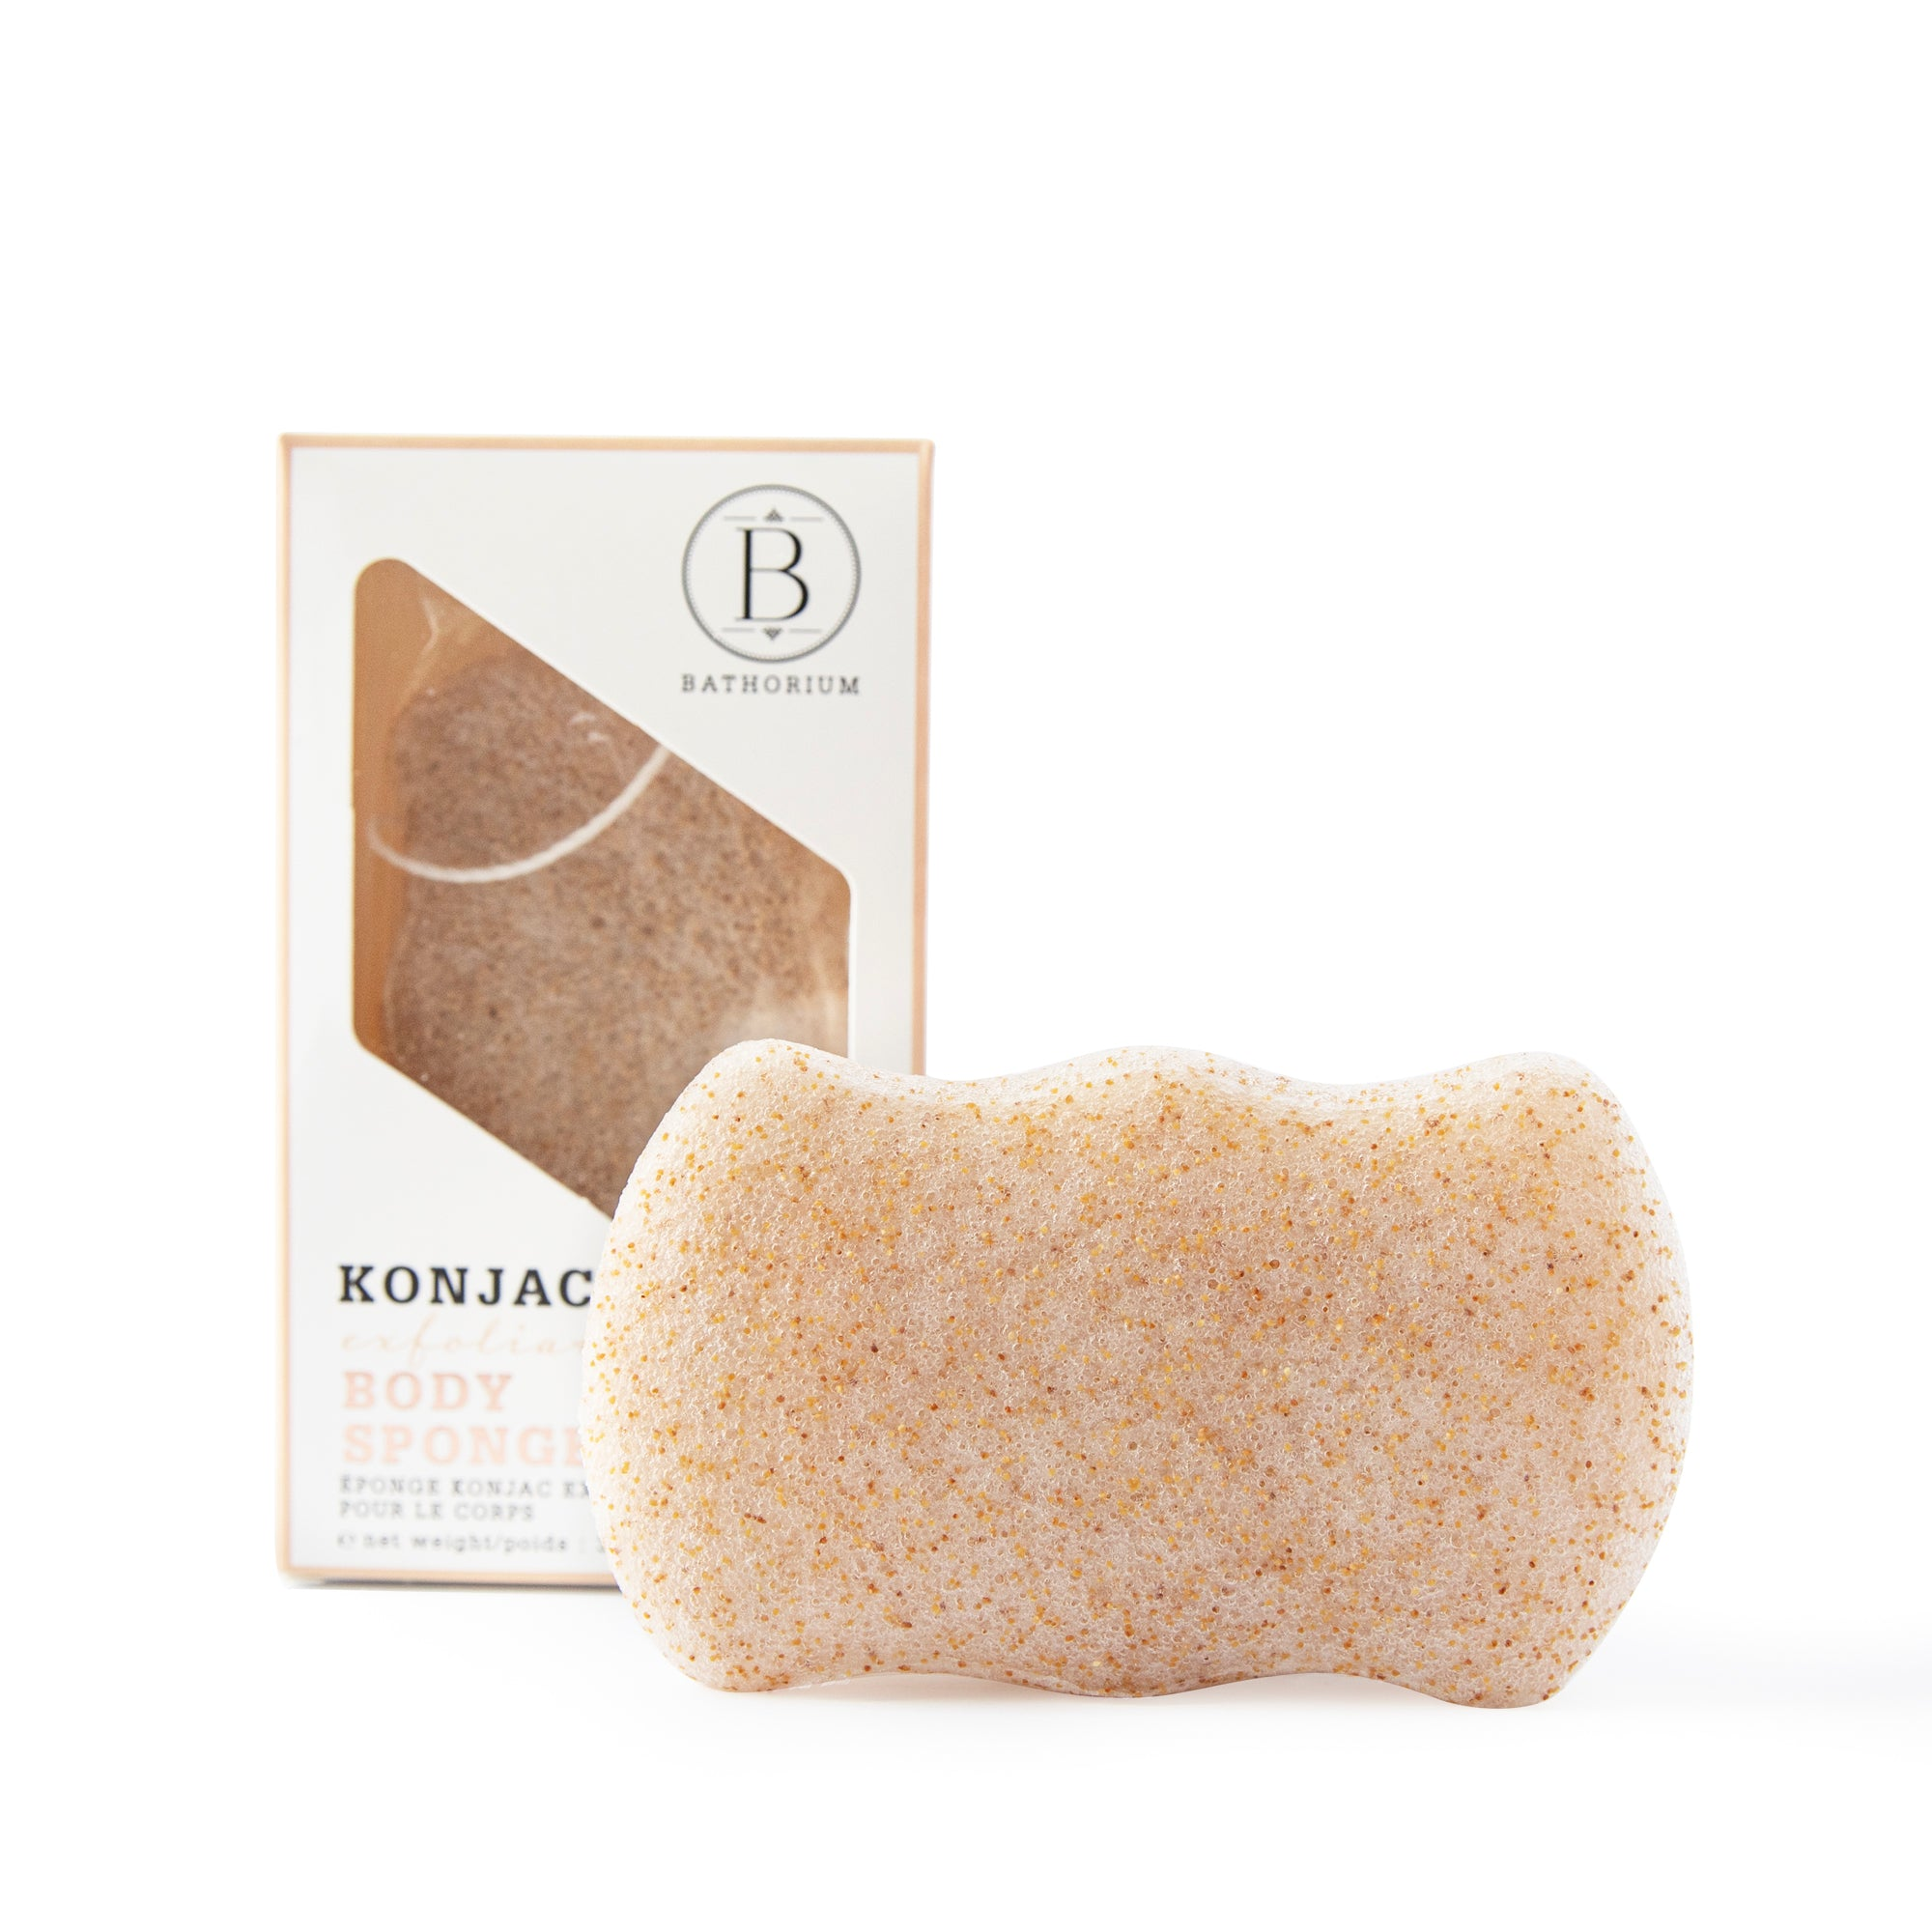 Bathorium Walnut Body Konjac Sponge